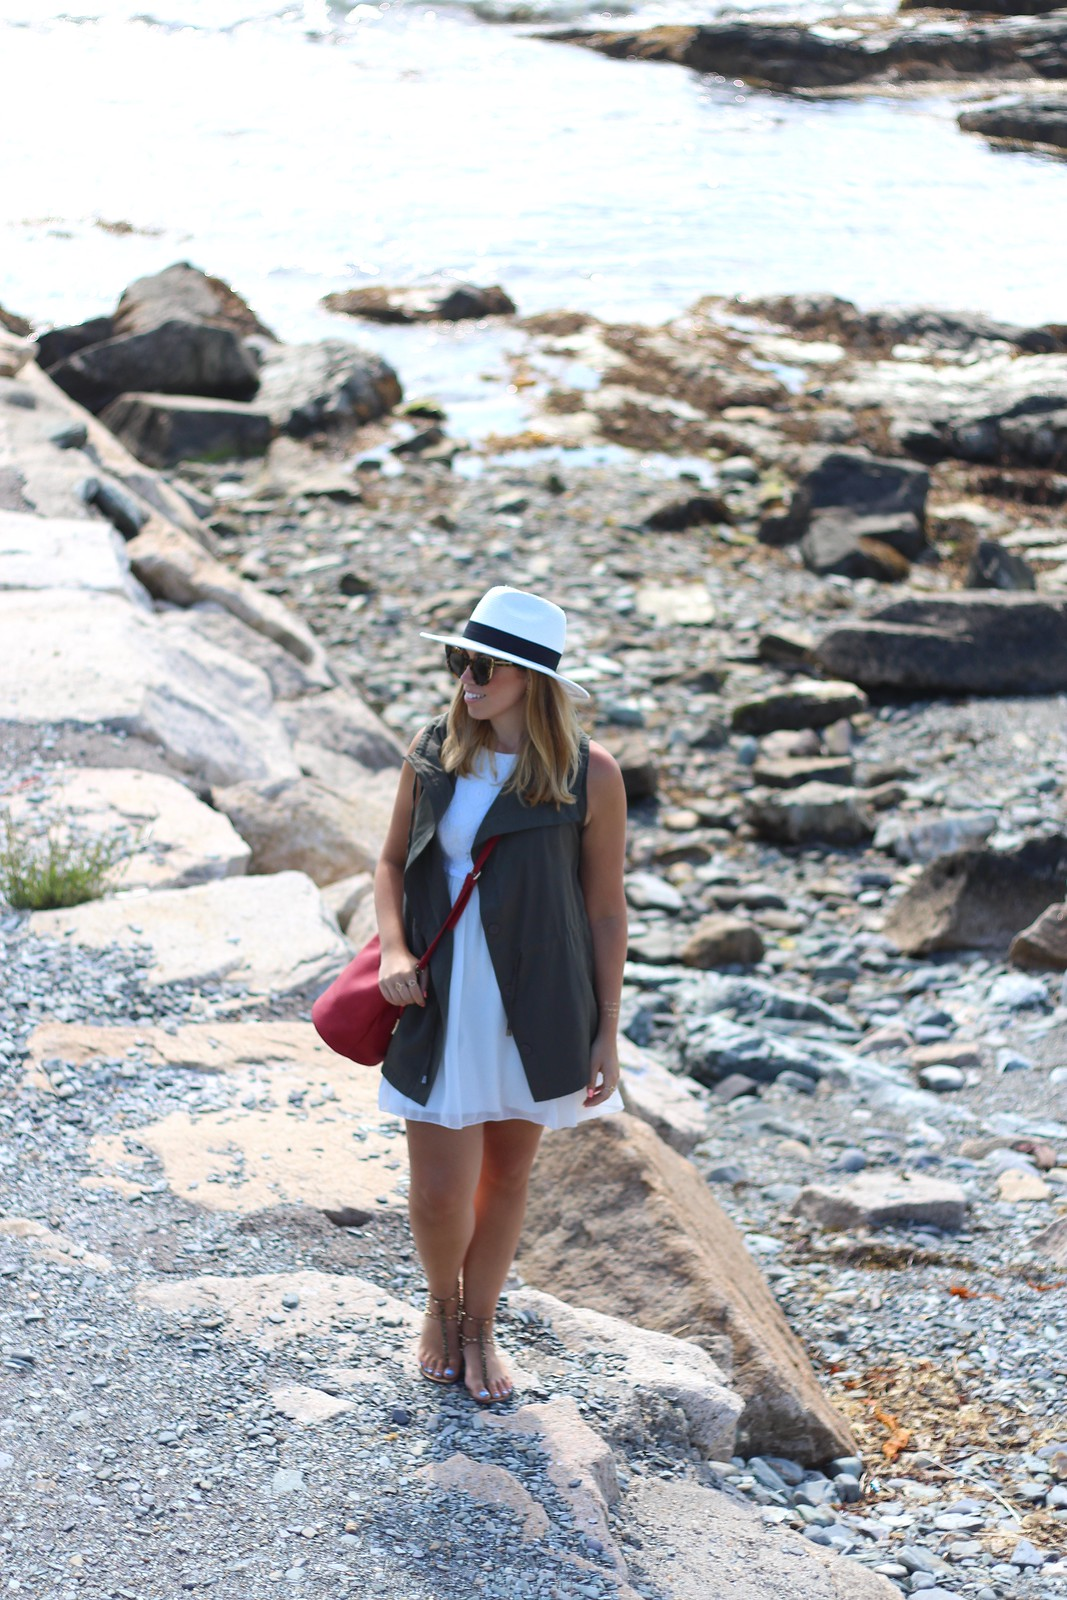 New England Coastal Style | Casual Summer Travel Outfit | The Best Little White Dresses Under $50 for Summer | Summer Outfit Ideas | LWD Little White Dress | Casual Outfit Inspiration